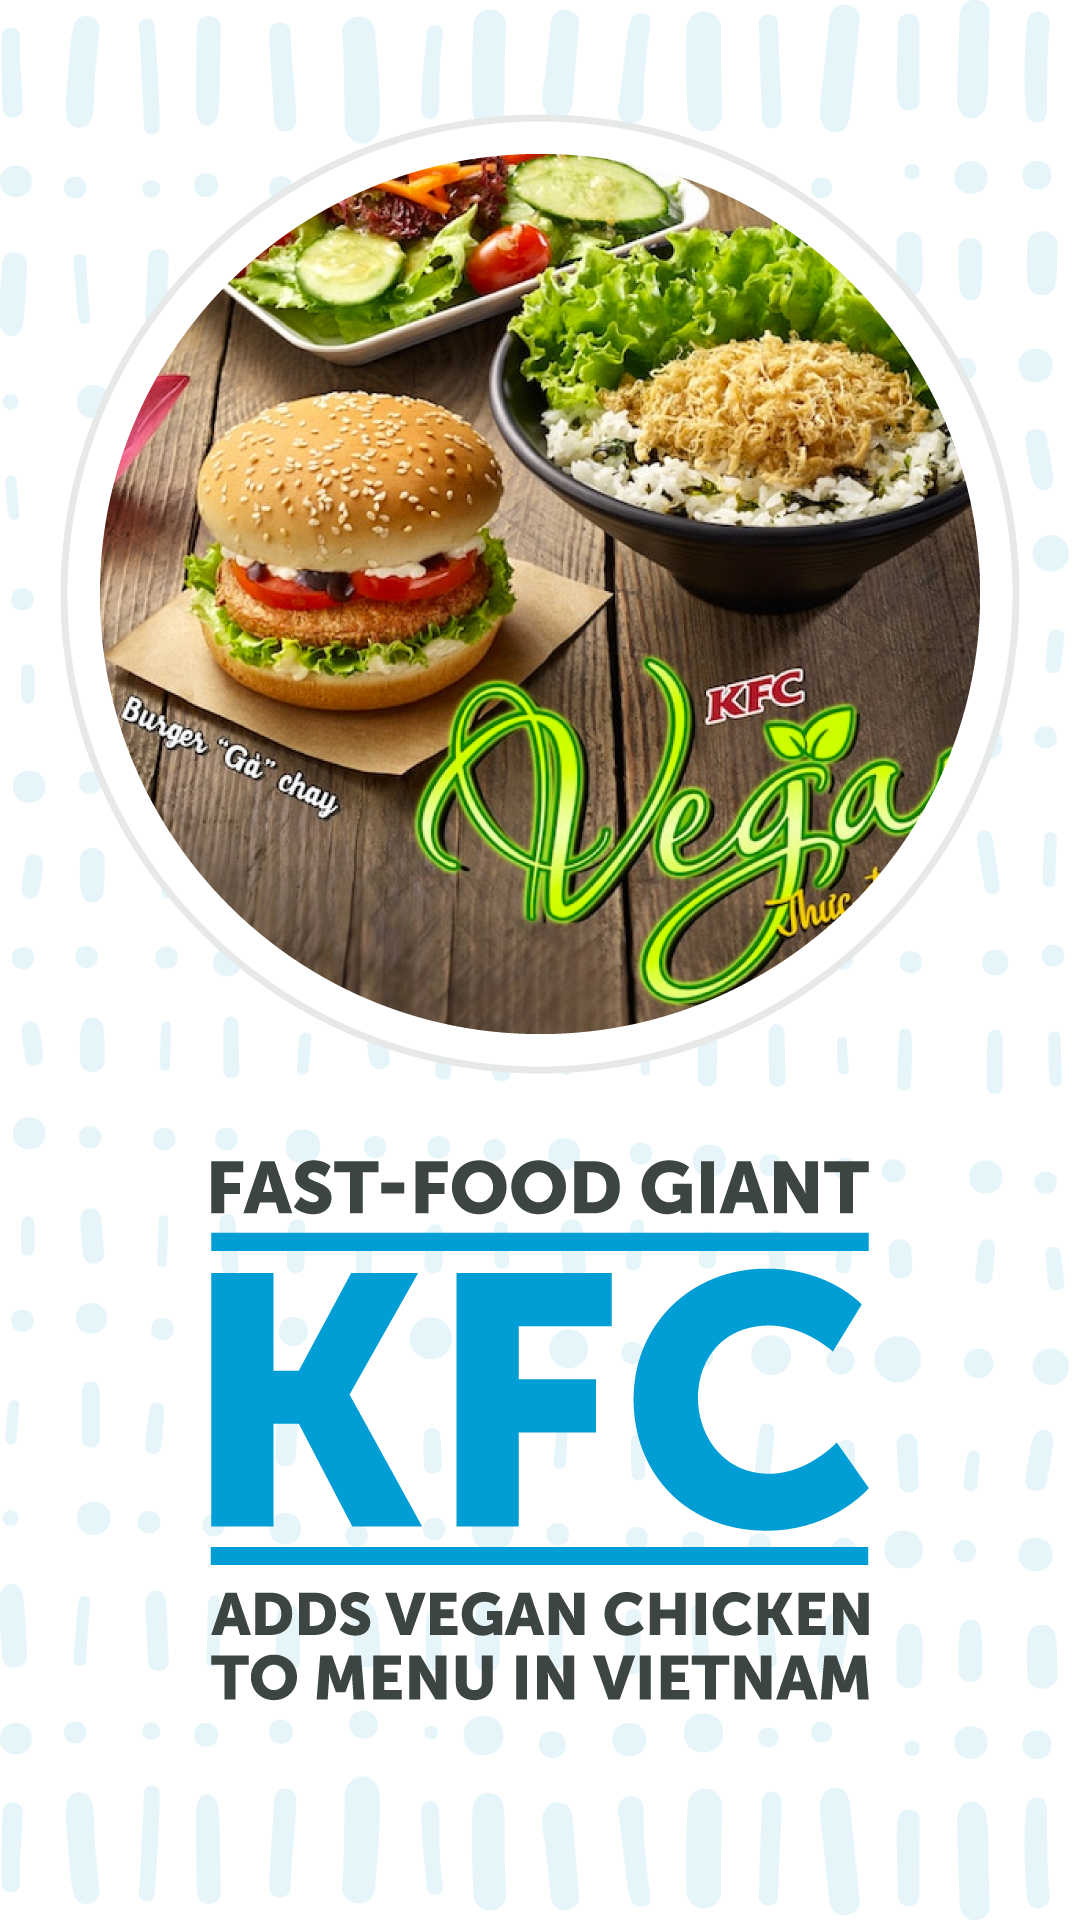 Fast Food Giant Kfc Adds Vegan Chicken To Menu In Vietnam Chooseveg Food Fast Food Kfc